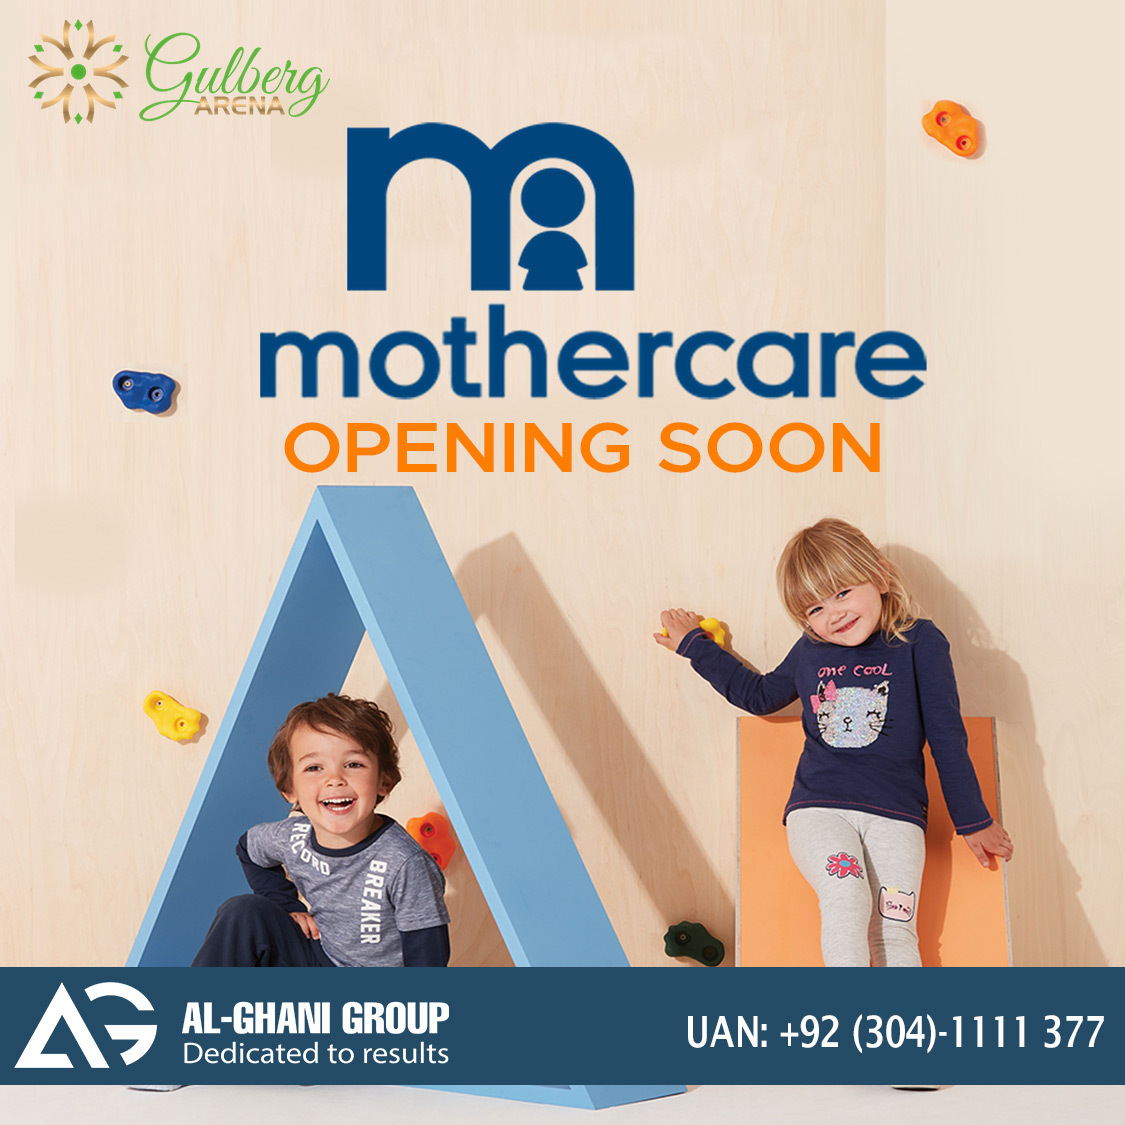 mother care outlet in gulberg arena mall and apartment